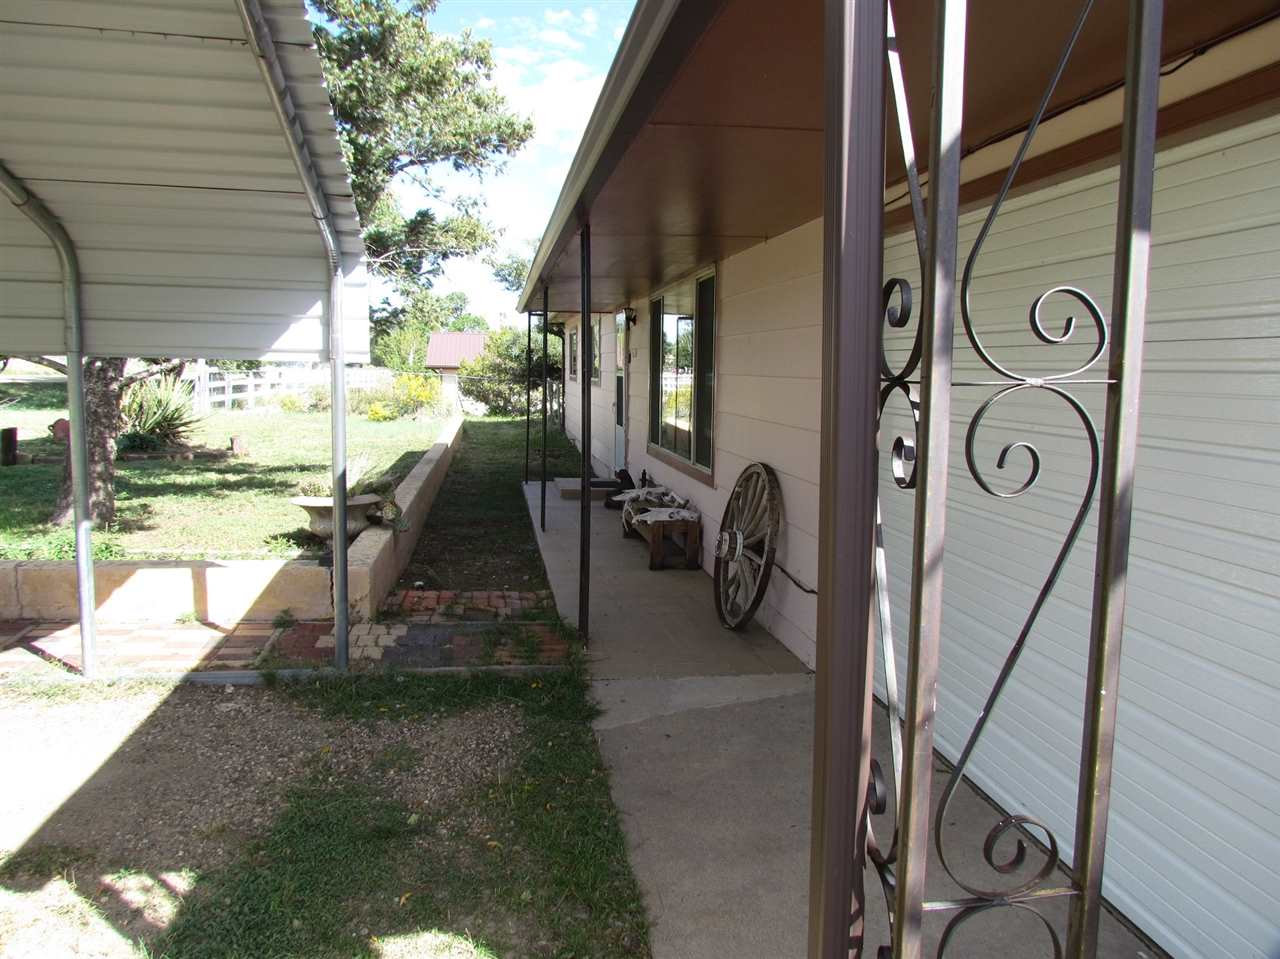 224 6th St, Cimarron, NM 87714